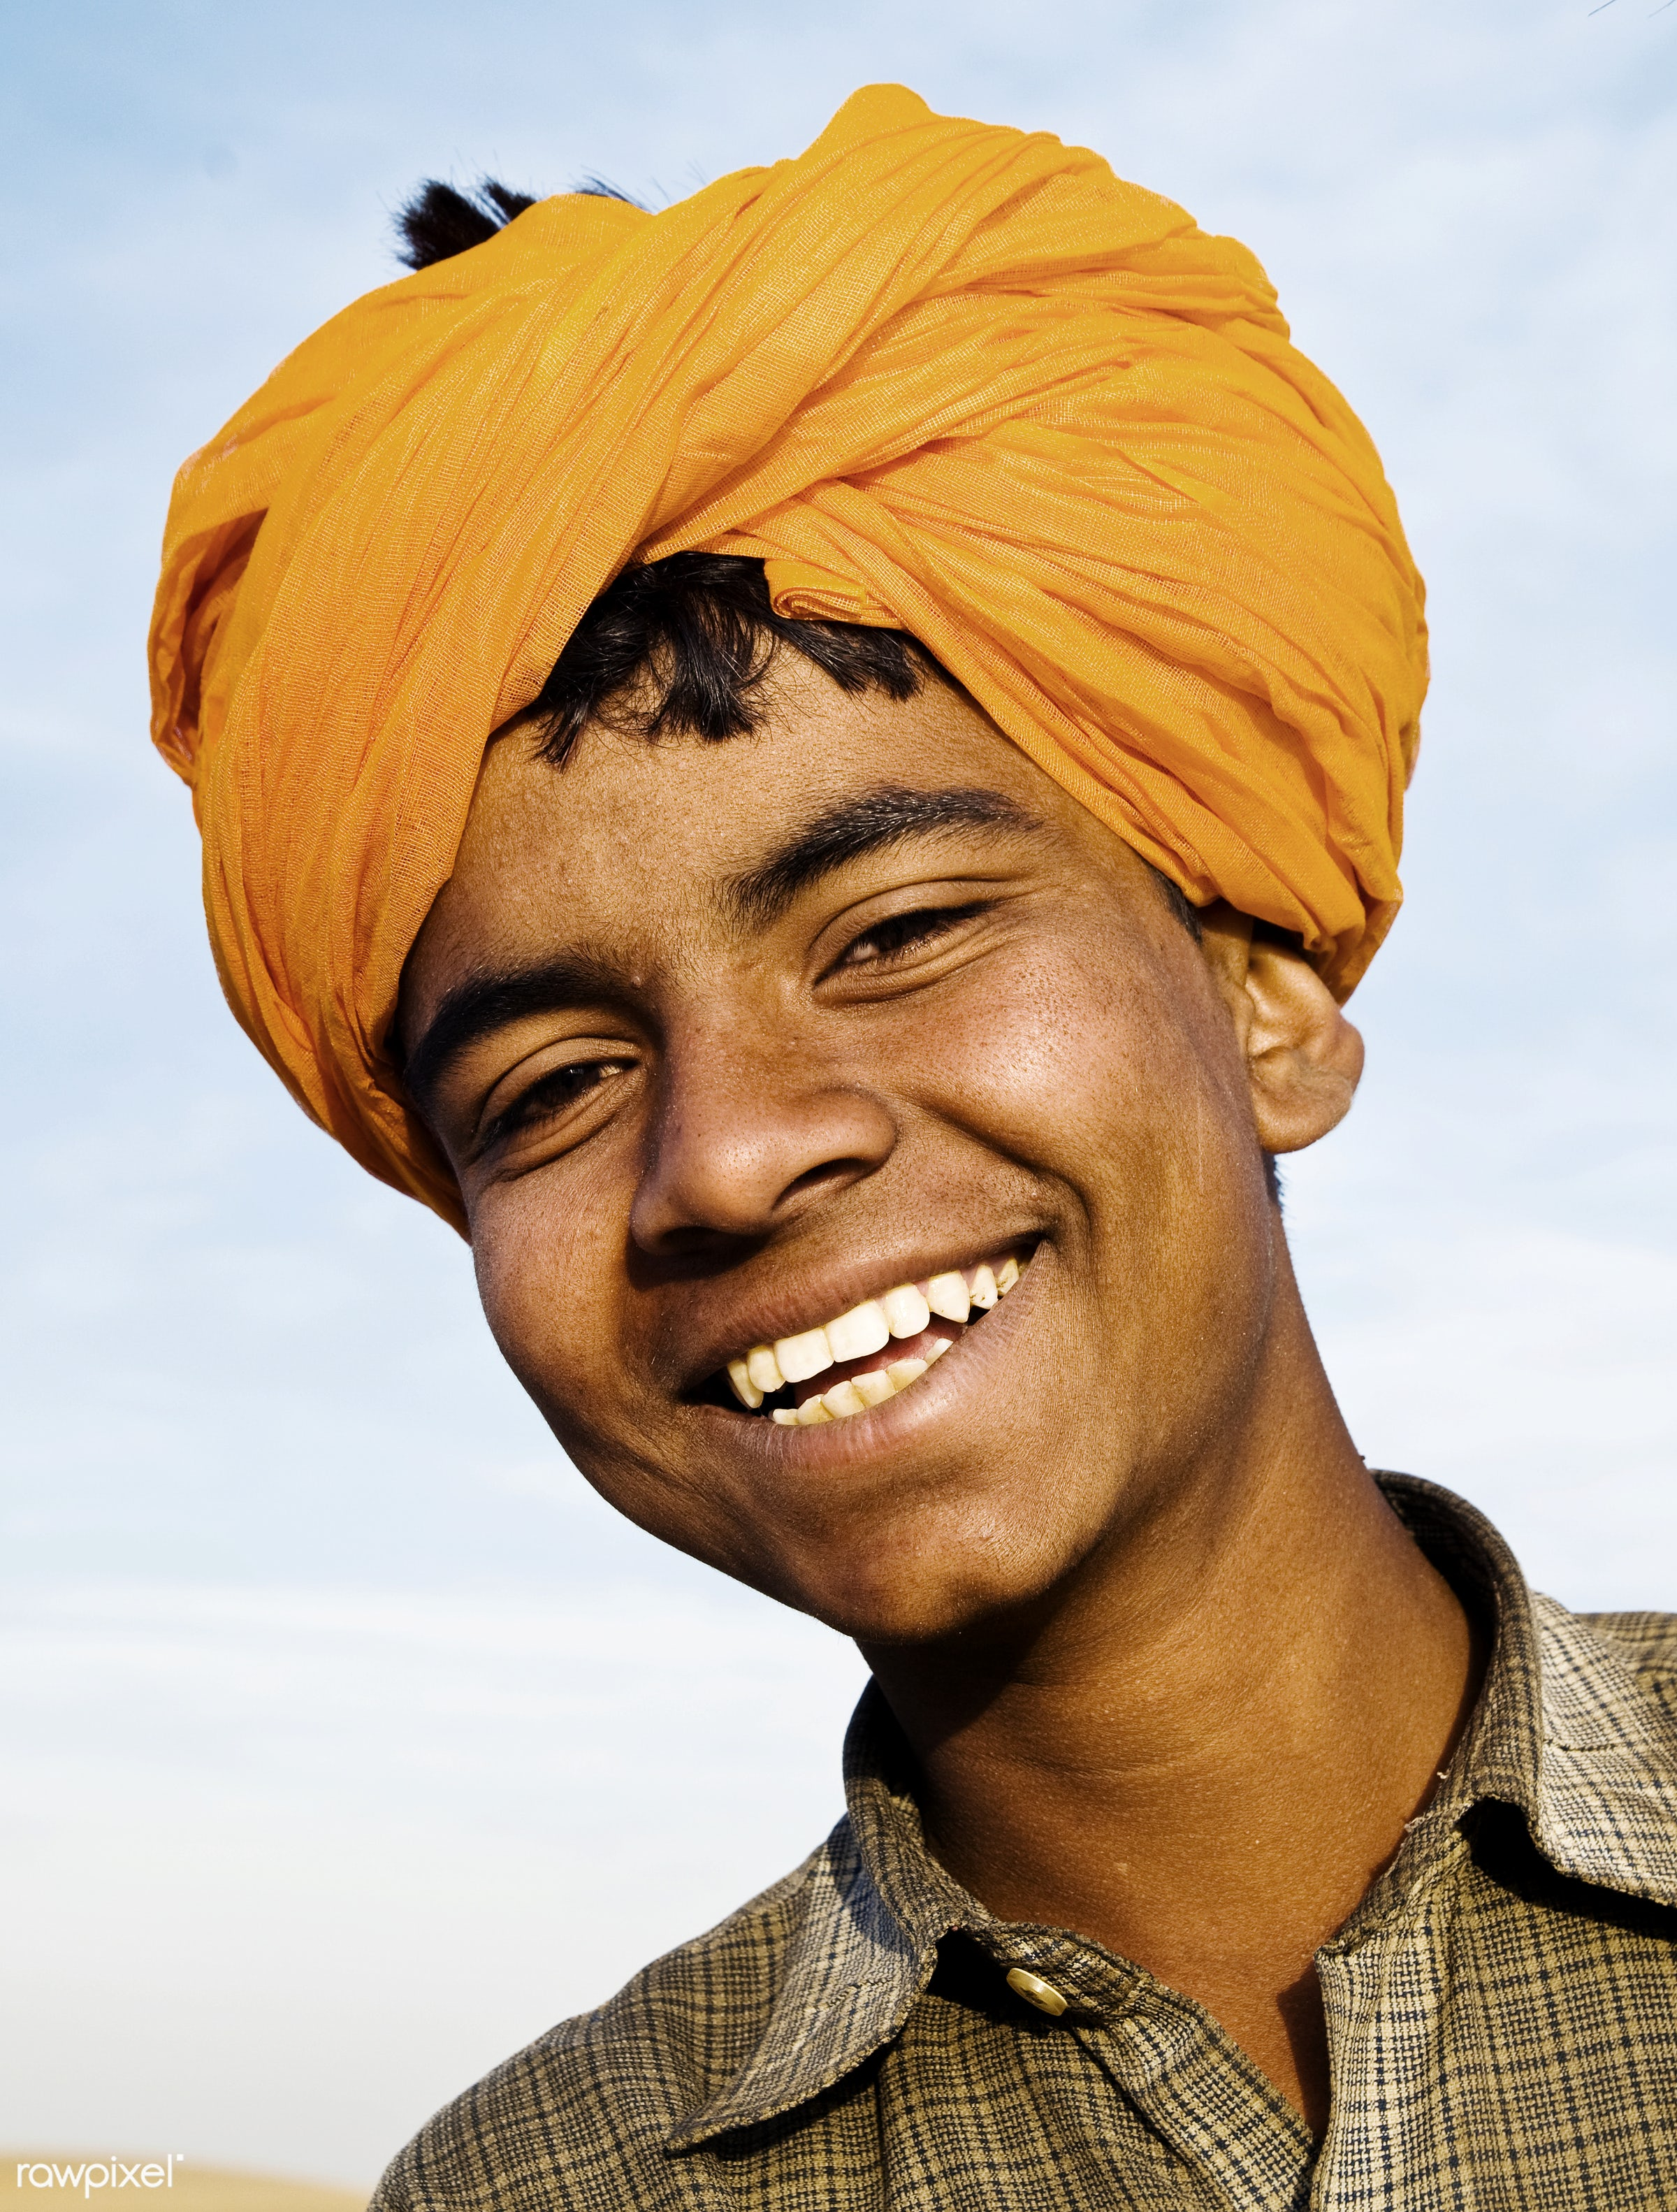 Portrait of an Indian boy - adolescence, asia, asian culture, asian ethnicity, casual, cheerful, child, childhood, close-up...